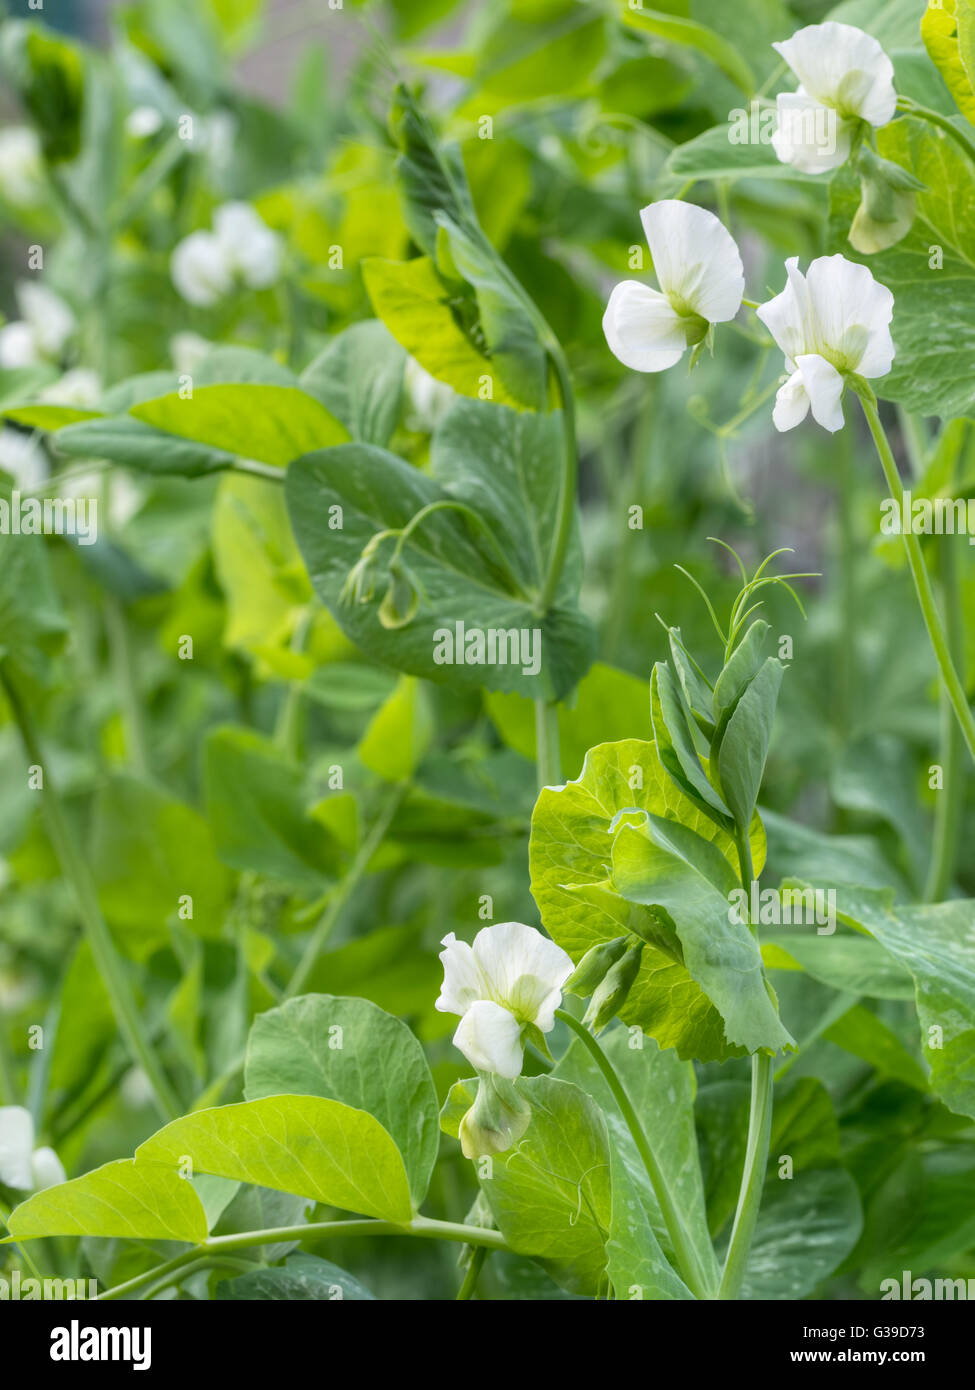 Garden pea plants. Traditional white flower variety. - Stock Image